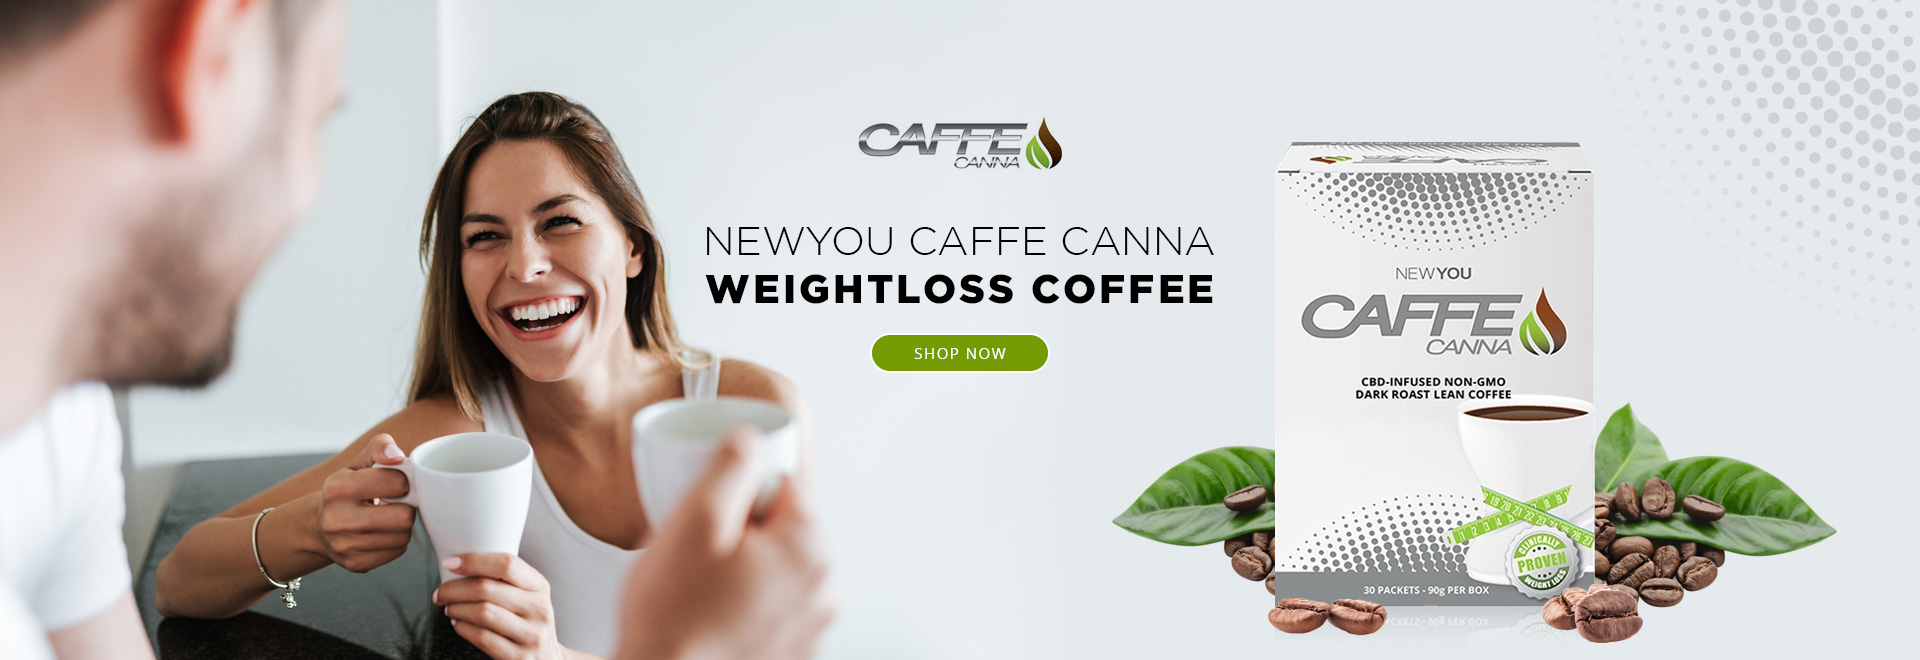 Caffe Canna - Weightloss Coffee